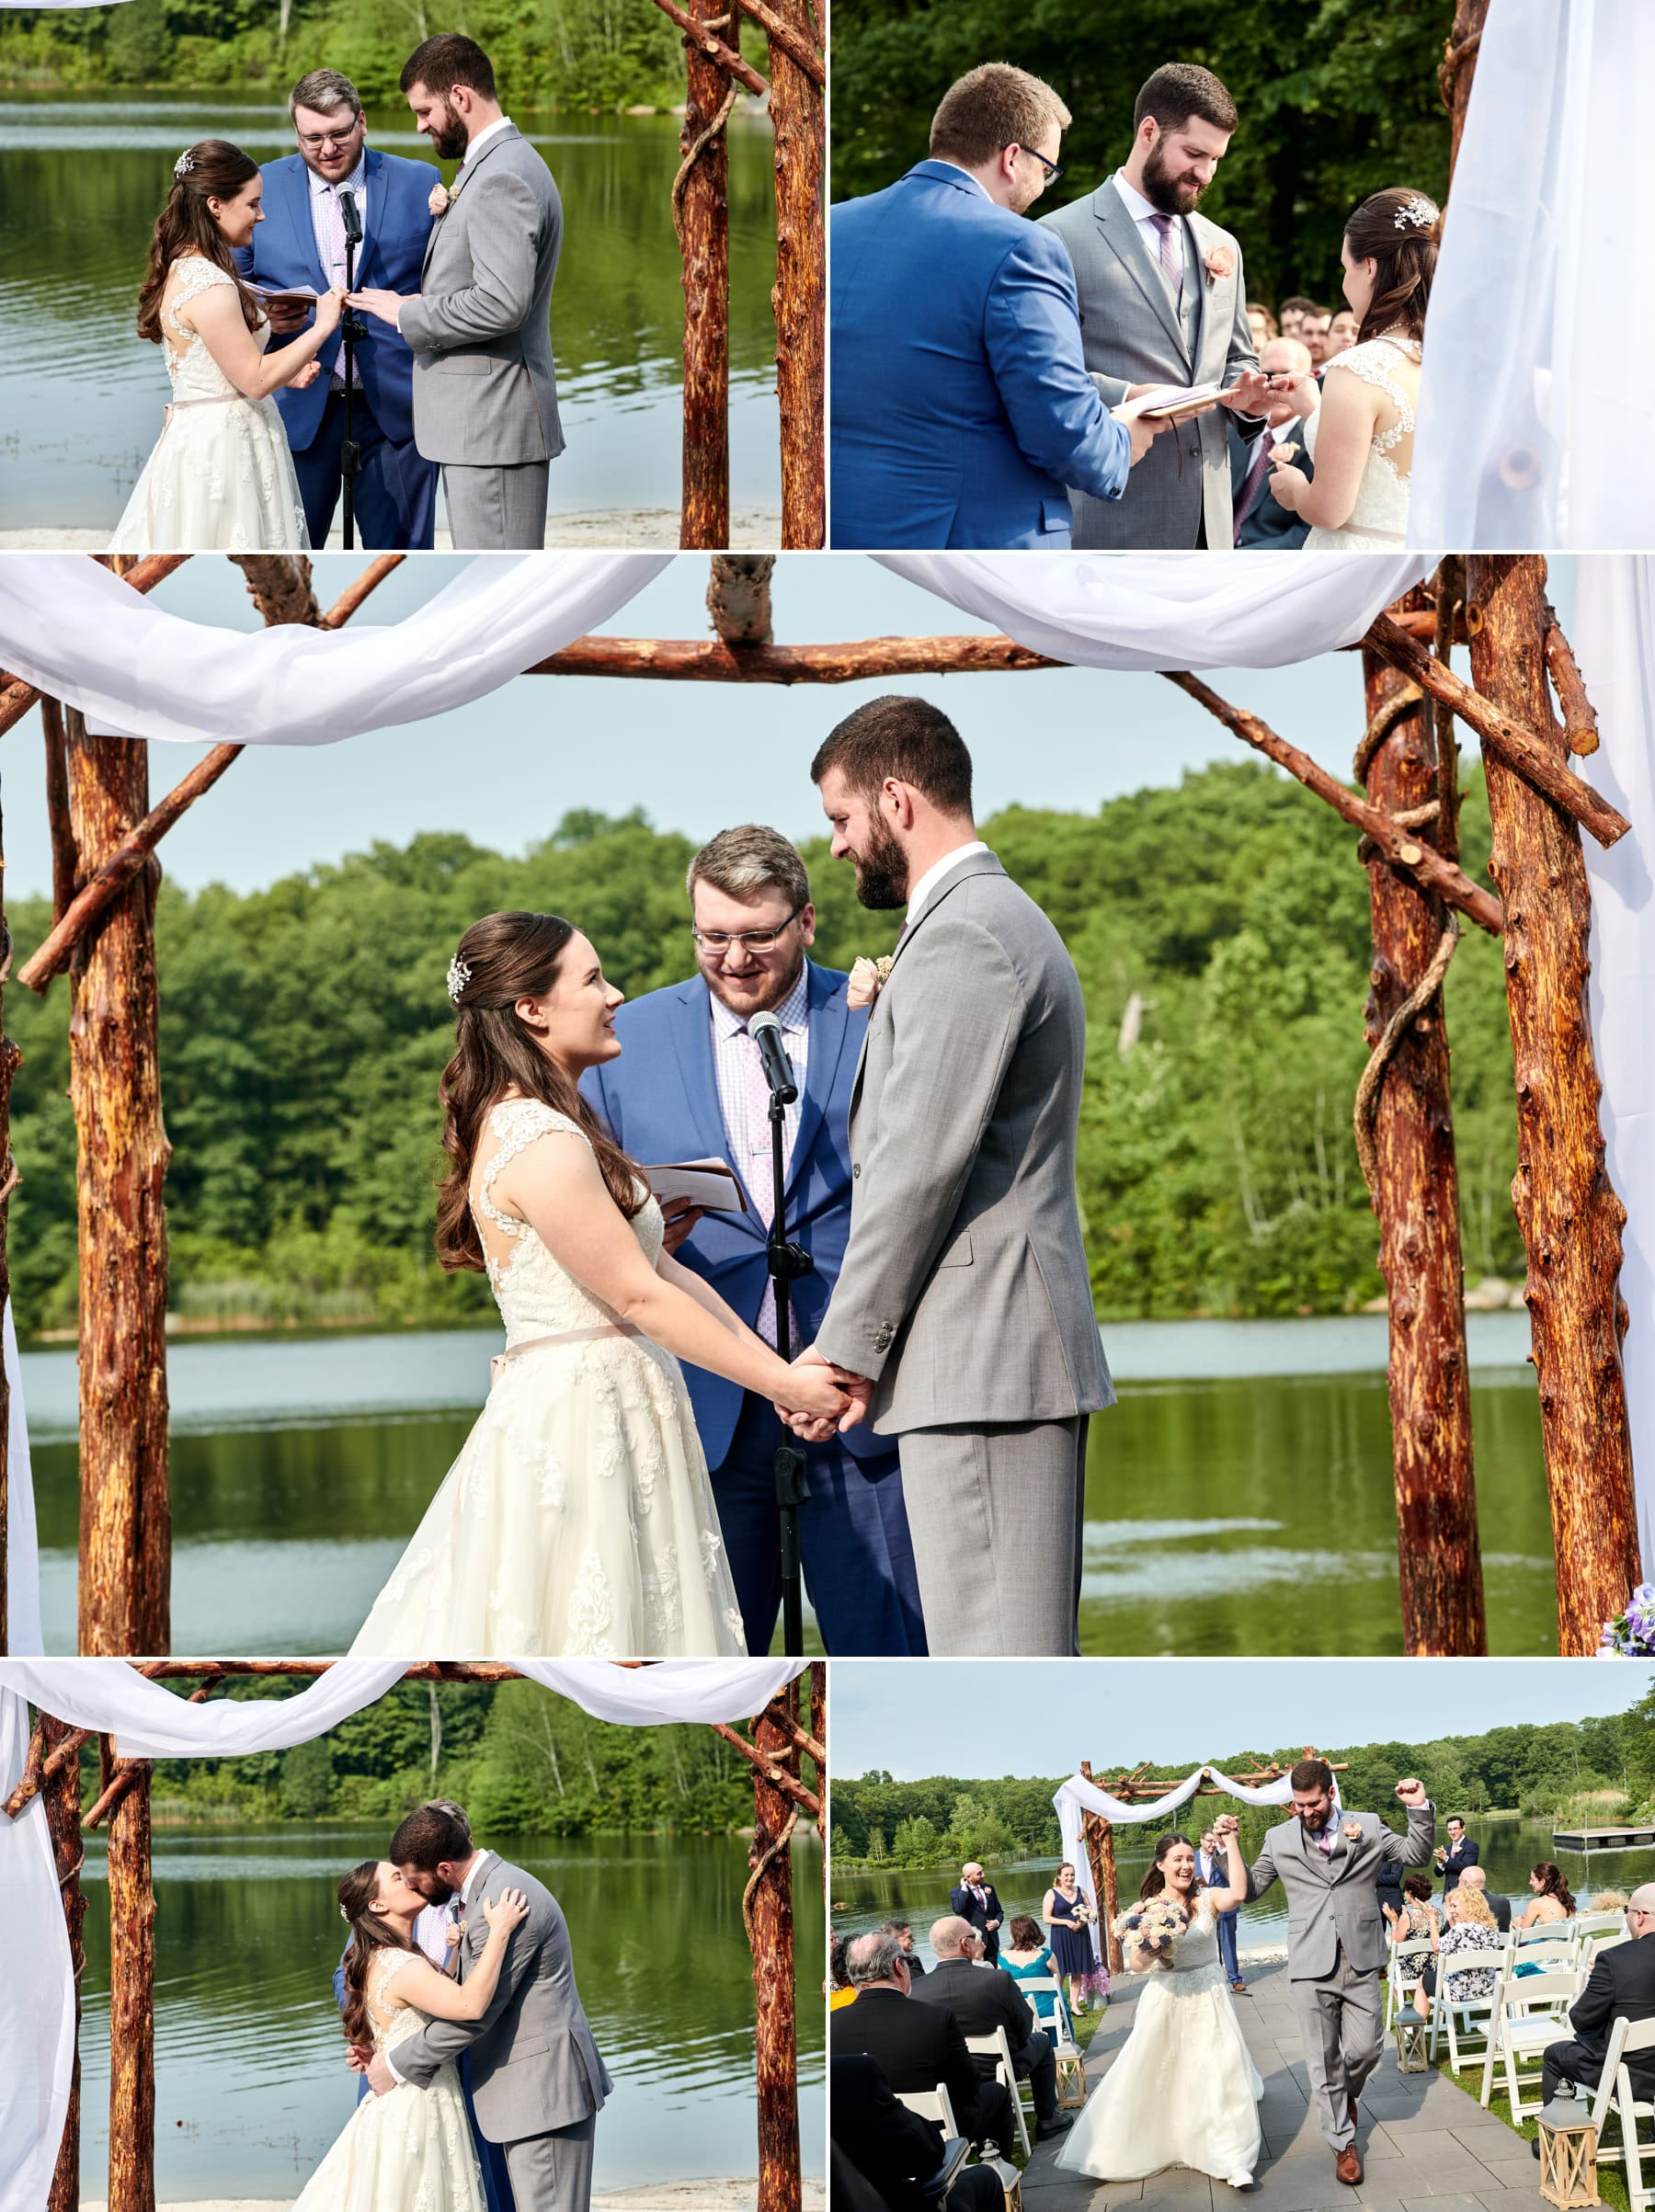 Rock Island Lake Club wedding ceremony photos